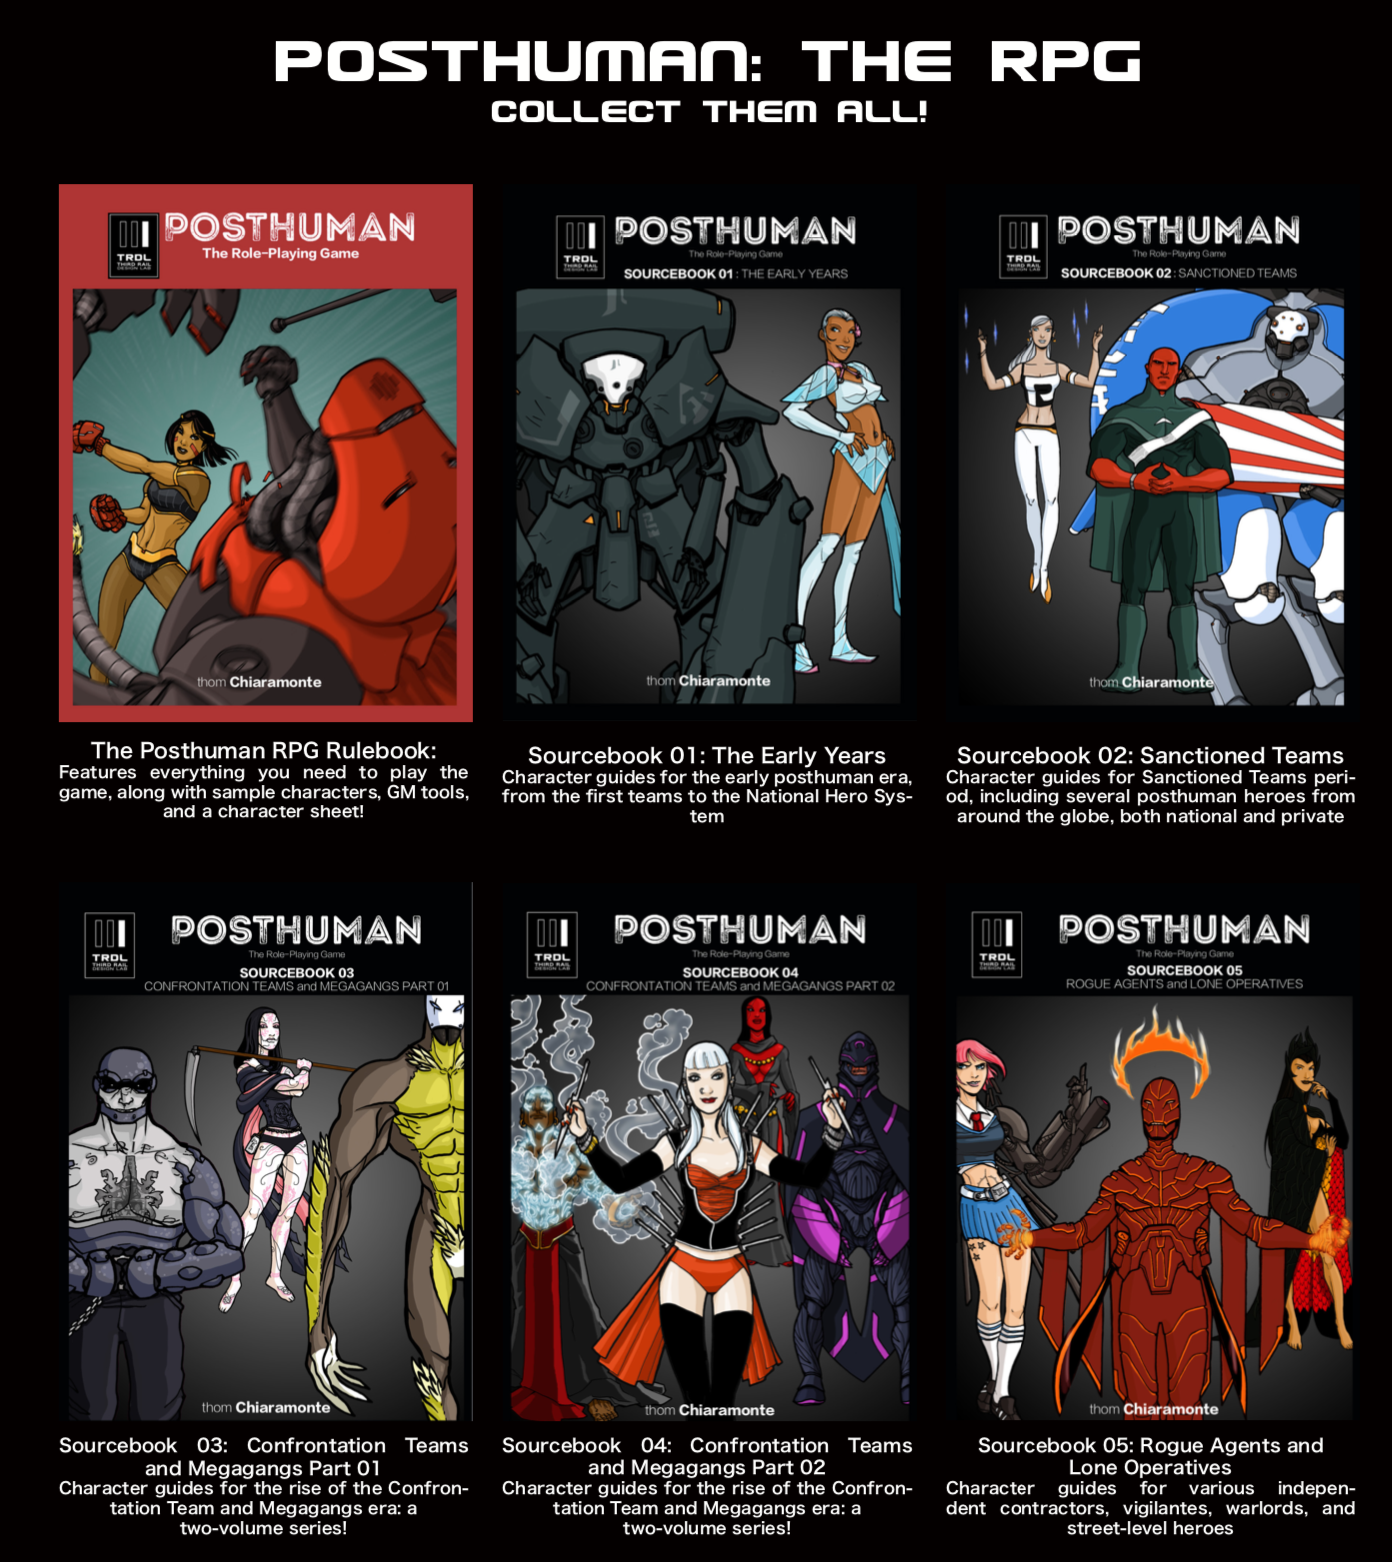 Posthuman, along with the first two Sourcebooks, was soft-launched at Wondercon Anaheim 2019. each came with a sparkly cyber-unicorn. Subsequently, the following three books were launched at Rose City Comic Con 2019, with the full collection available for the first time. Still sparkly.